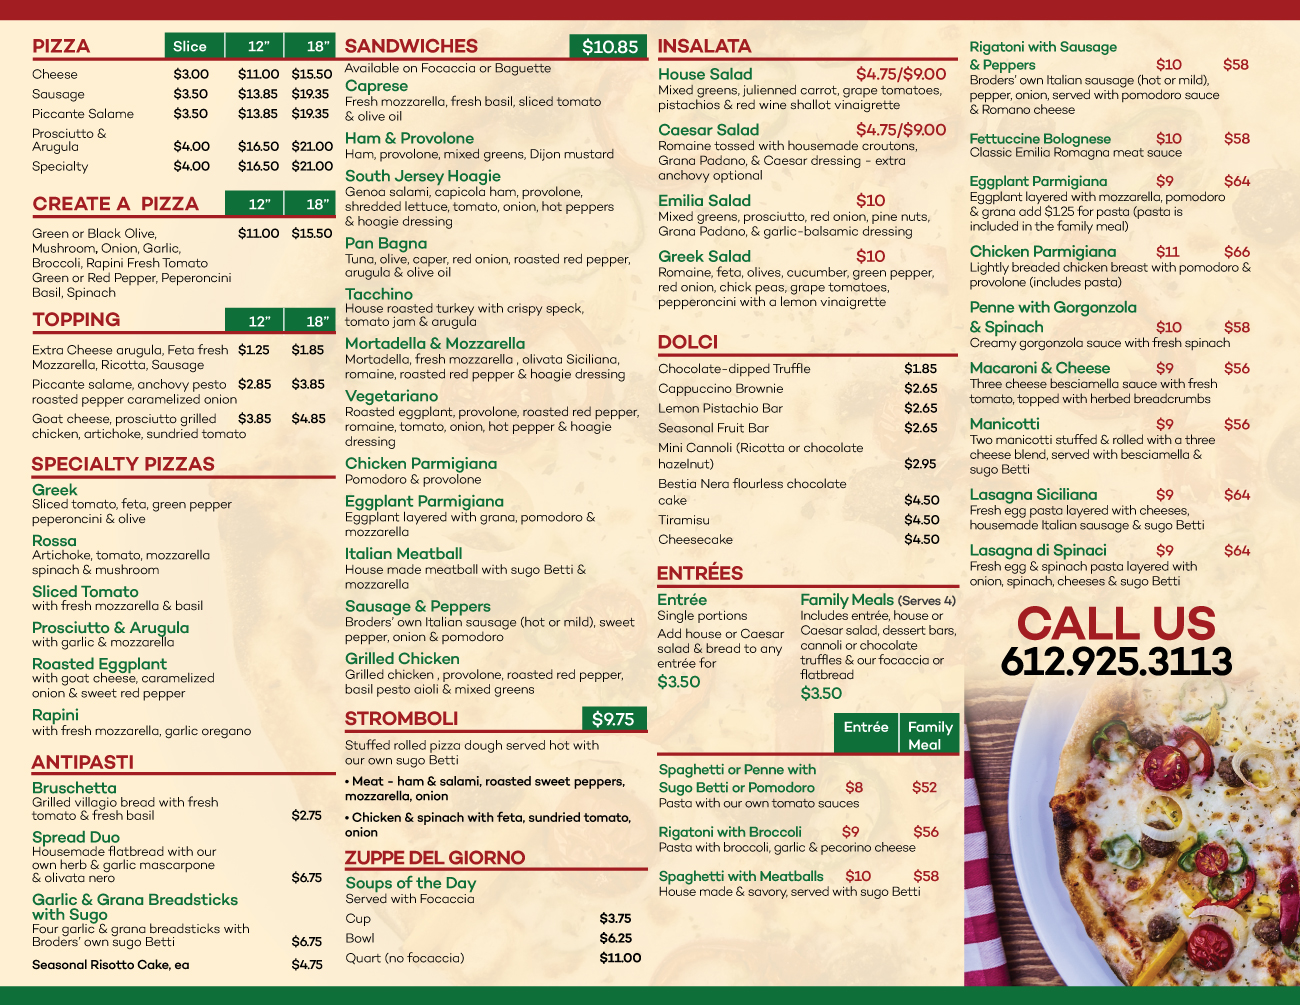 Cucina Italiana Dolci Pizza Delivery Flyer Design For Broders Cucina Italiana By Black